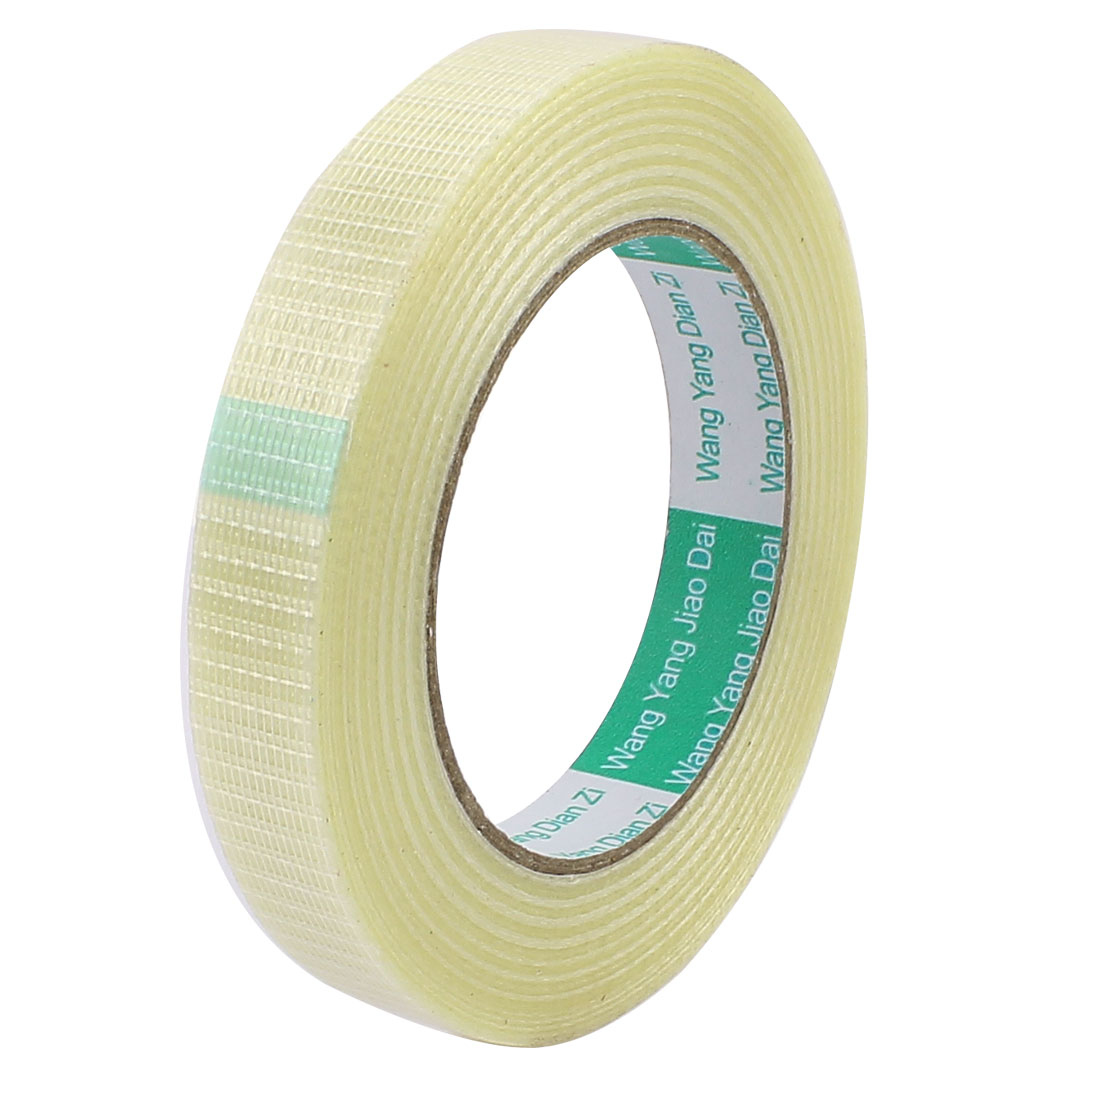 18mm Height 50M Length Long Adhesive Insulating Grid Glass Fiber Tape Roll